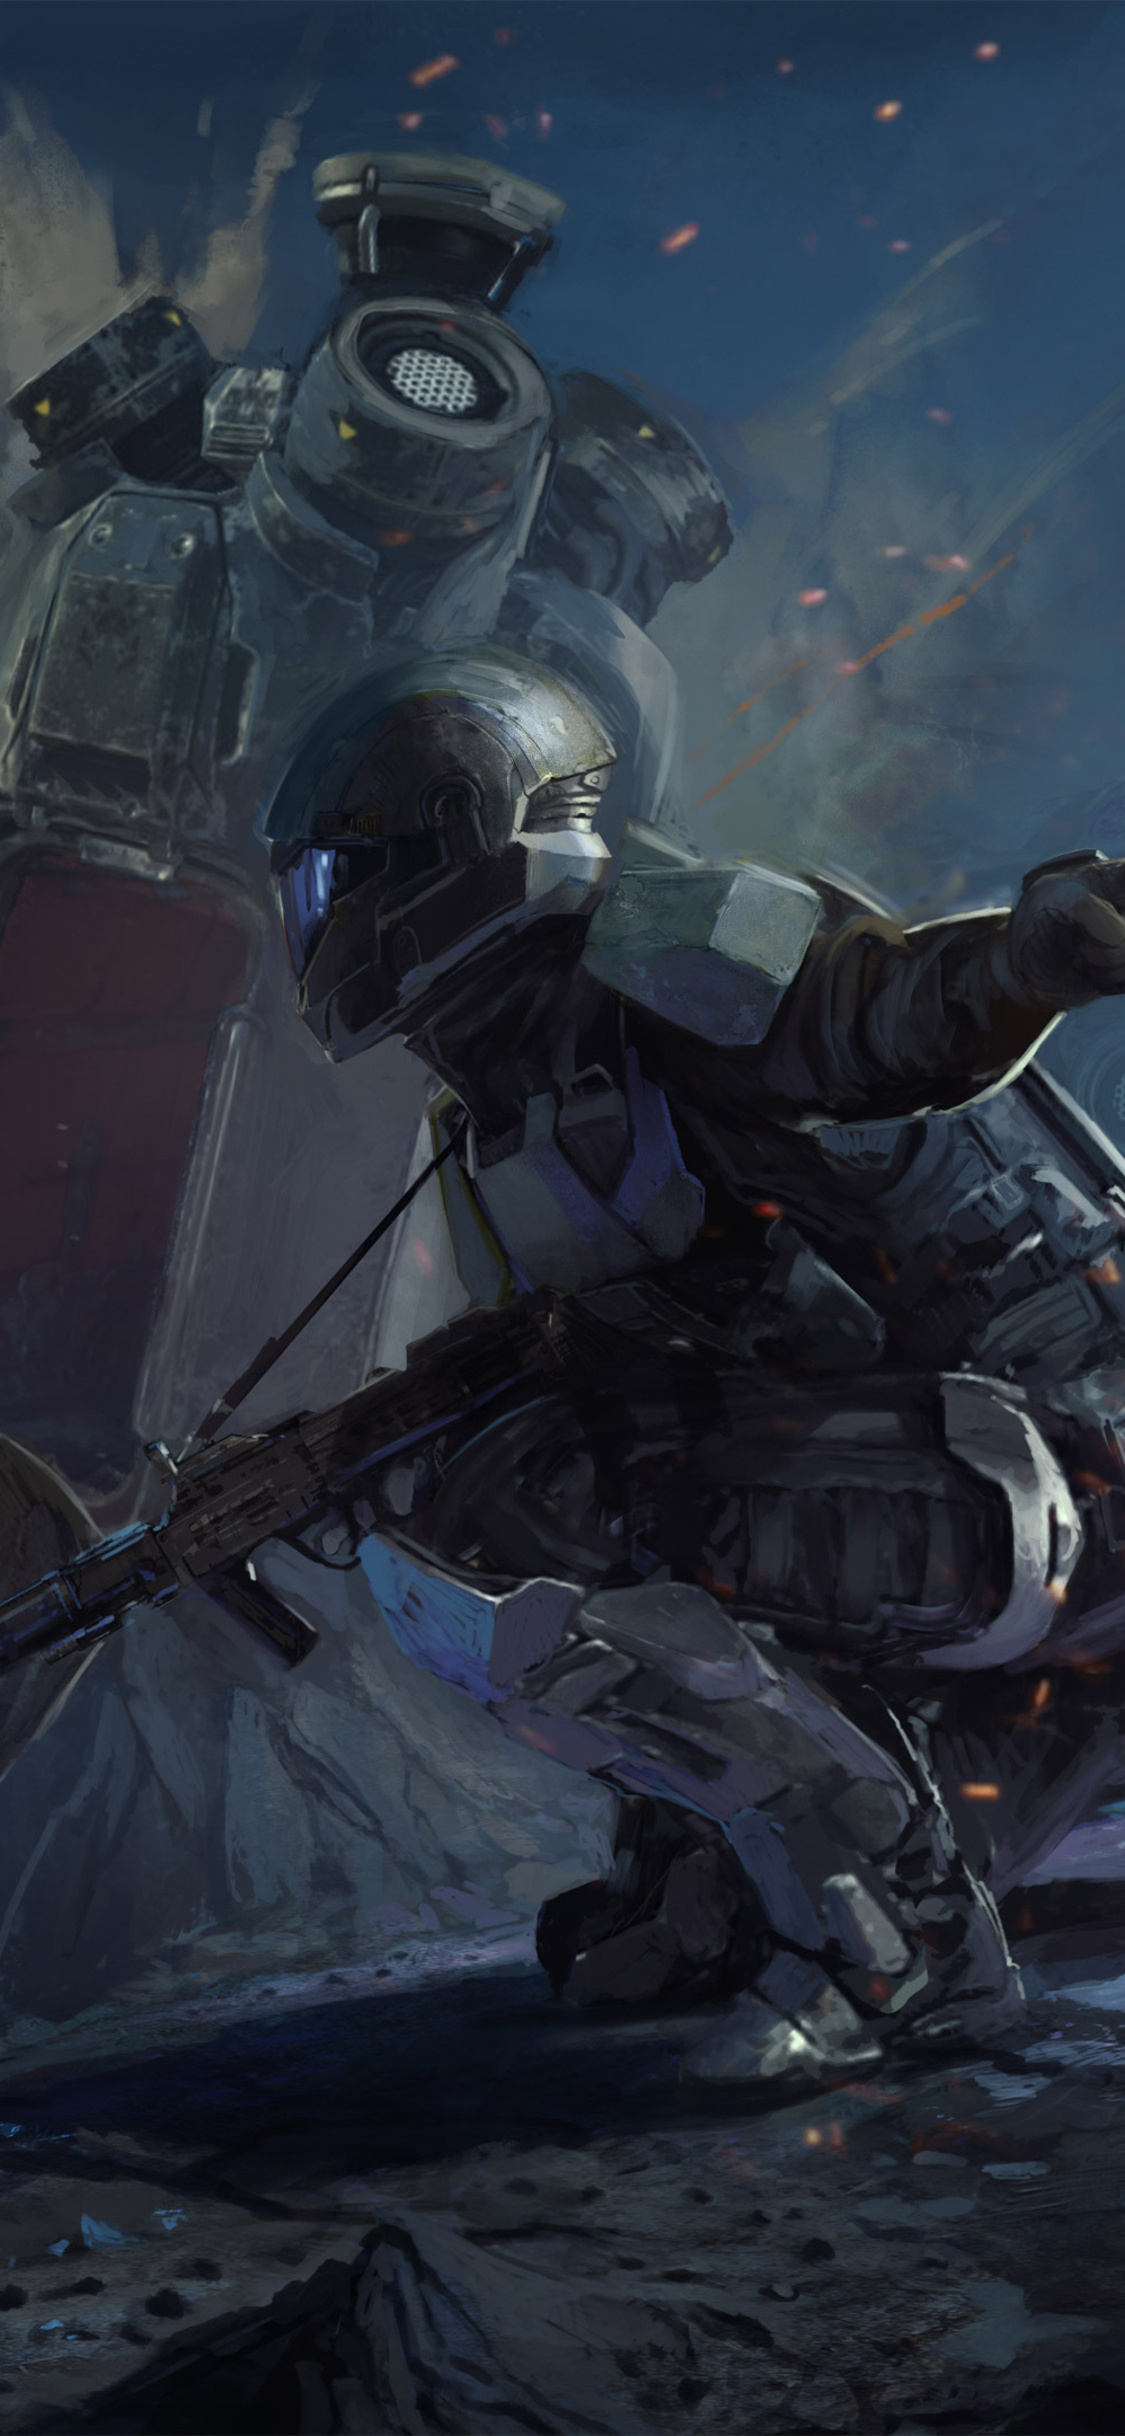 1125x2436 operation spearbreaker engagement halo wars 2 iphone xs